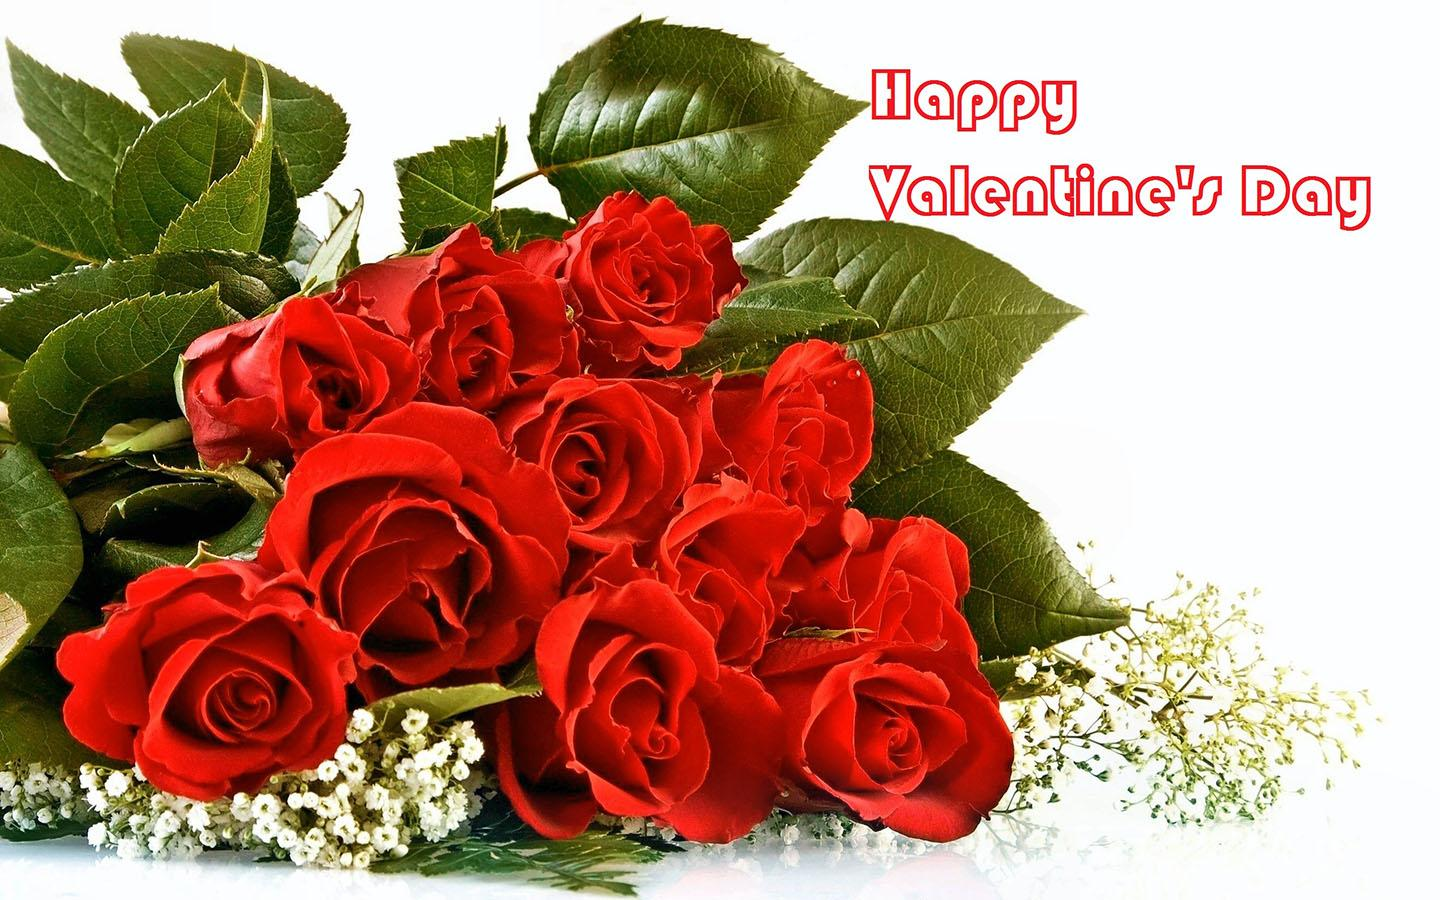 Valentine day rose wallpaper startupcorner happy valentines day wallpaper android apps on google play ideas izmirmasajfo Images